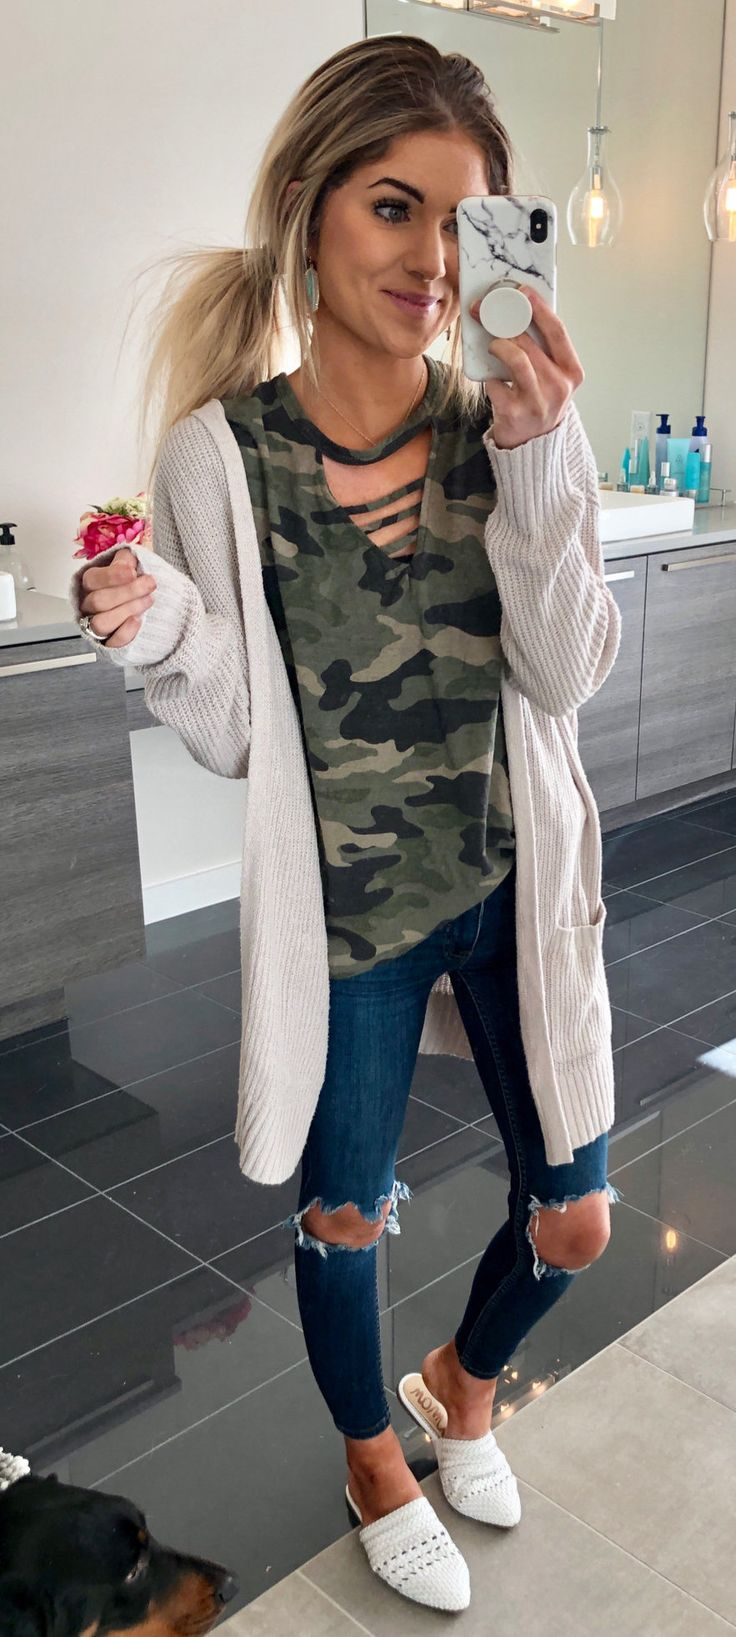 green and black camouflage t-shirt, white long-sleeved cardigan, and distressed blue denim fitted jeans #spring #outfits